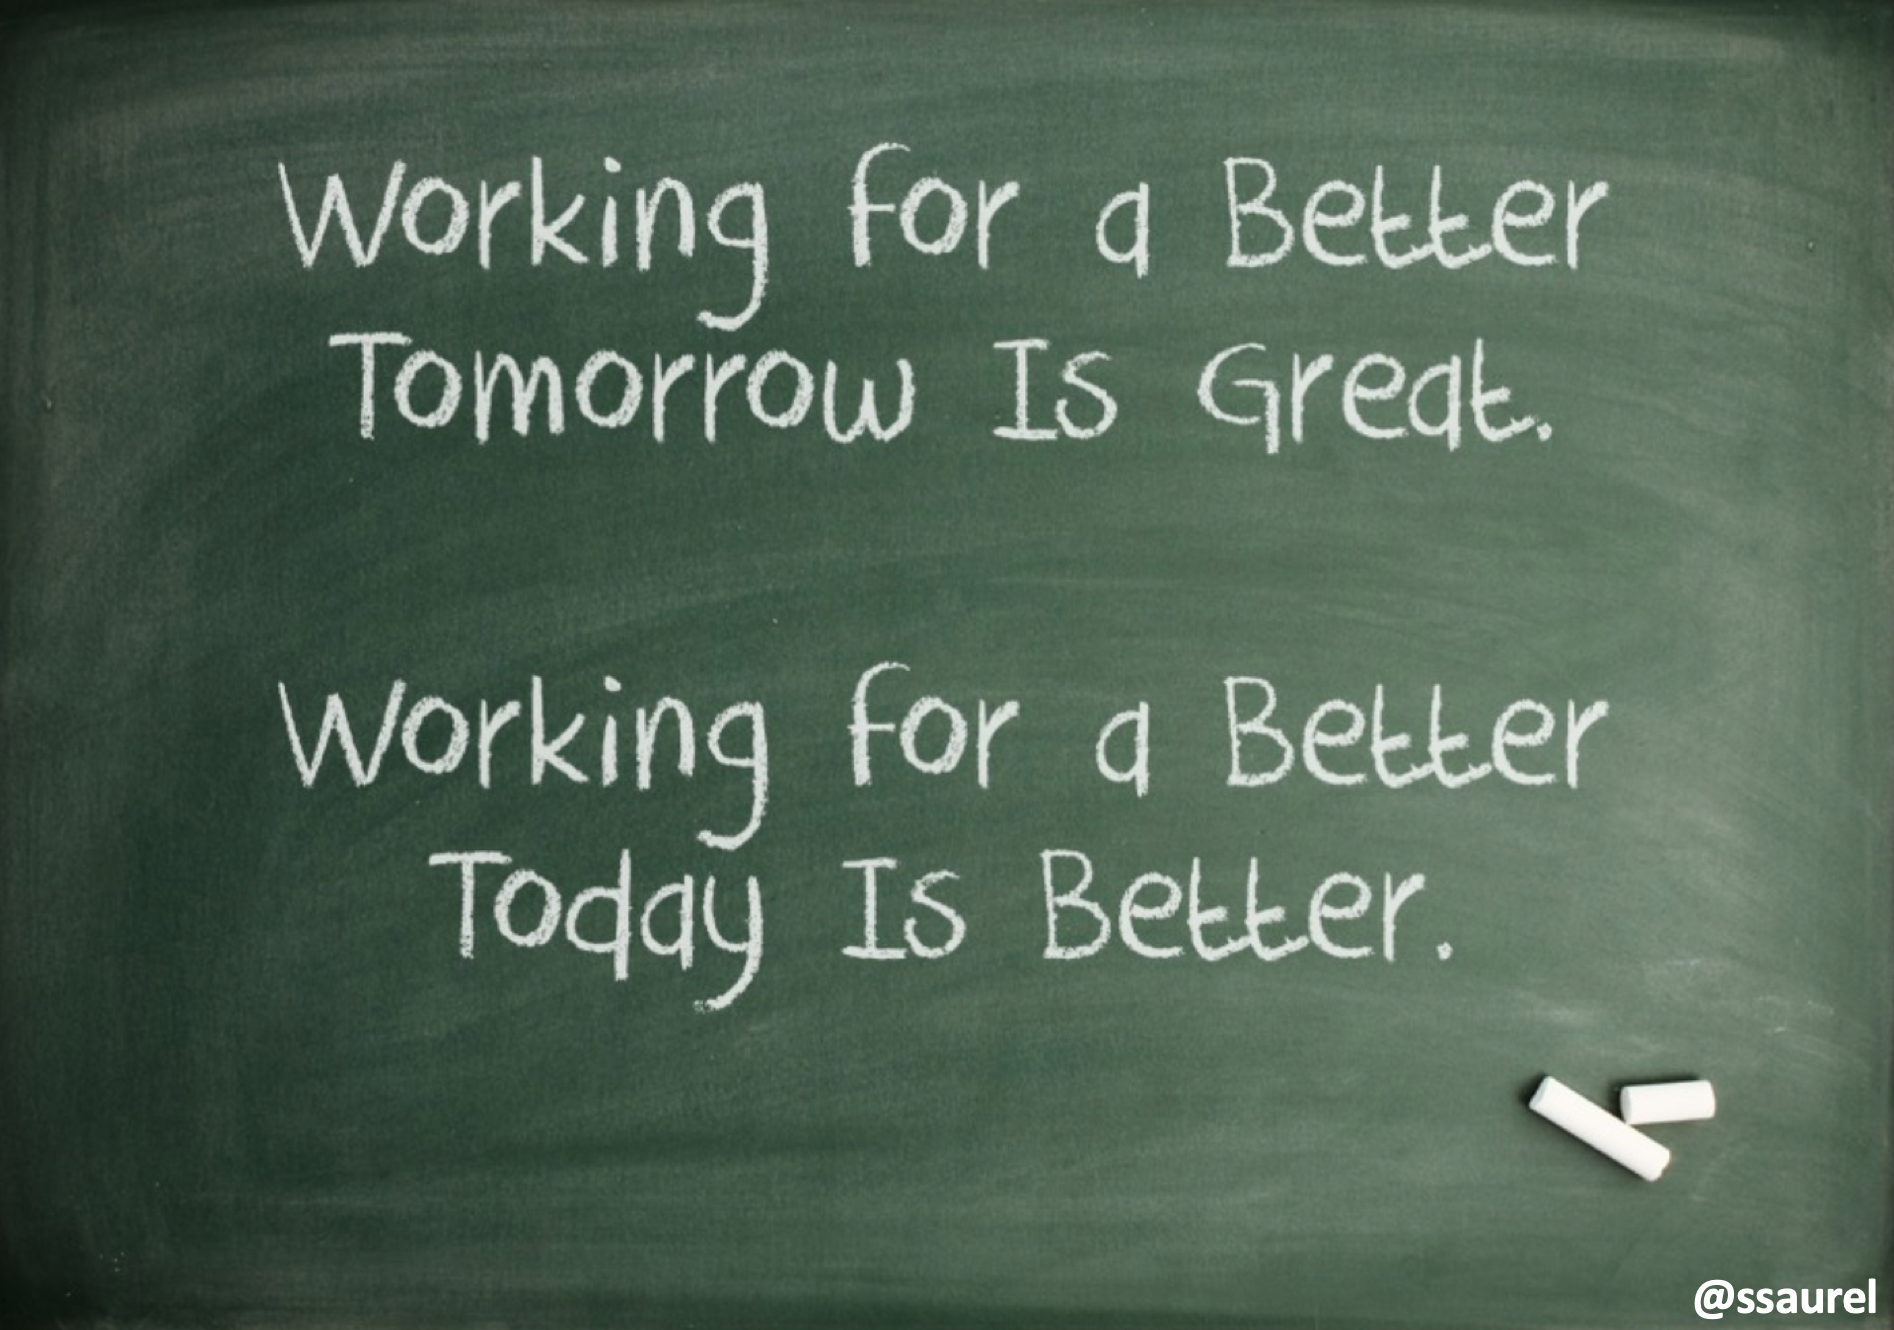 [Image] Working for a Better Tomorrow Is Great, Working for a Better Today Is Better.